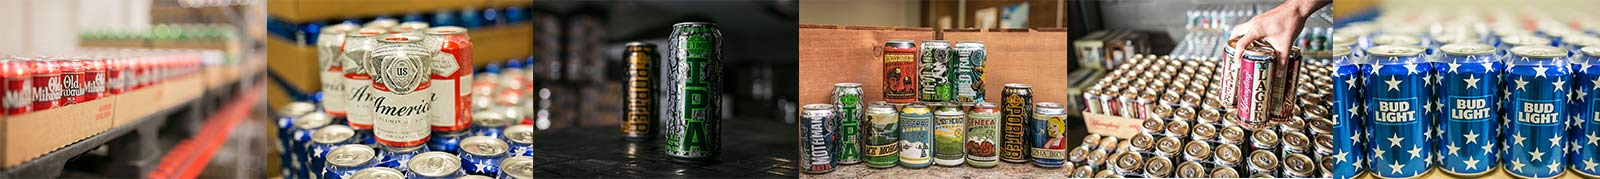 Beer photo collage